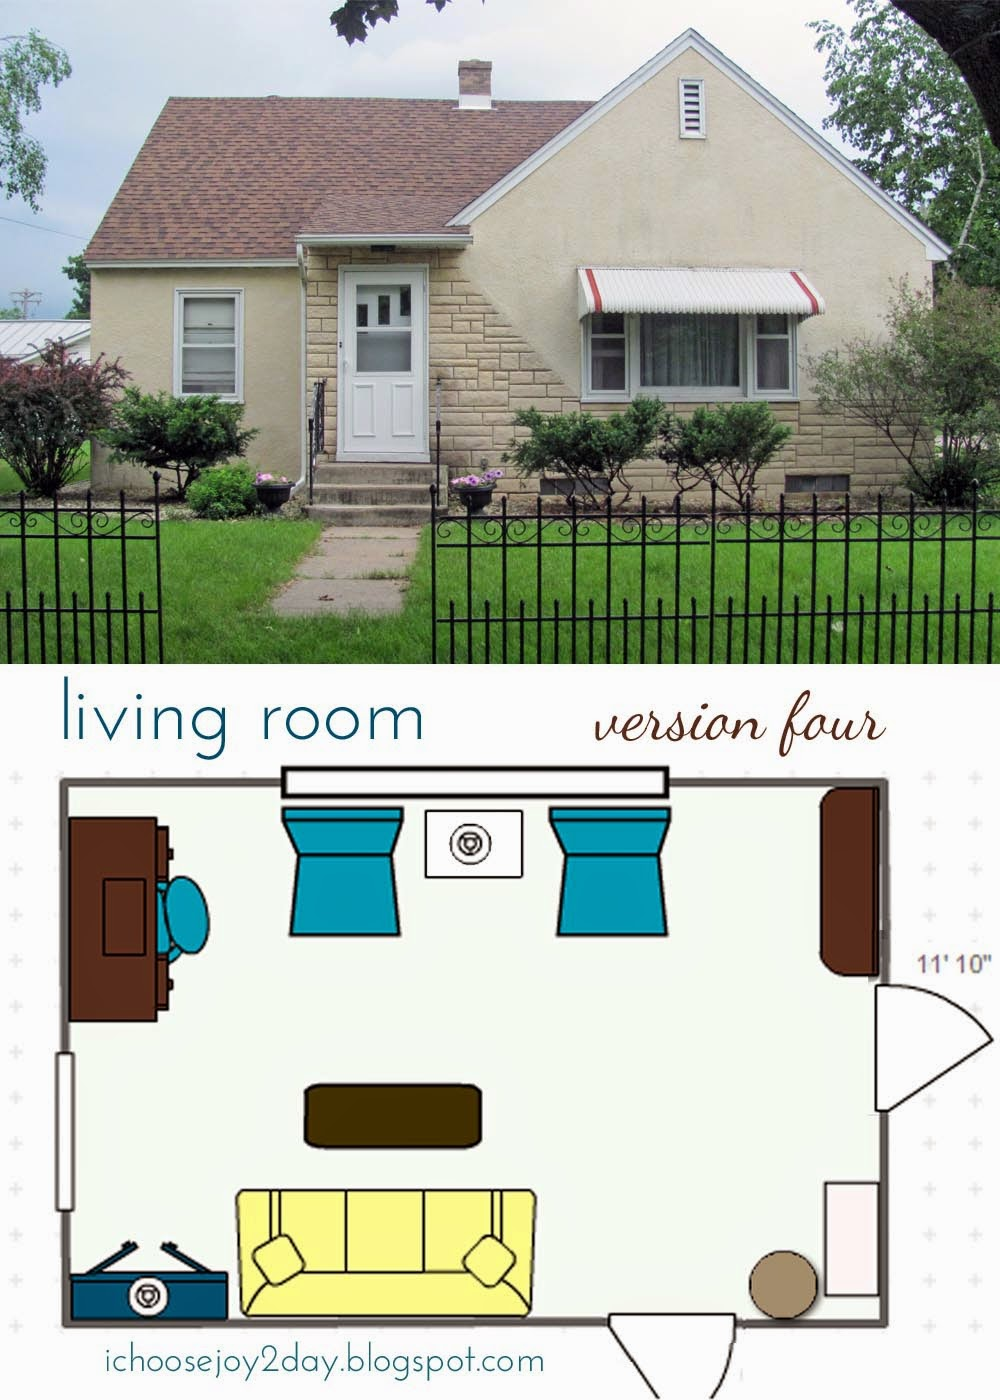 http://ichoosejoy2day.blogspot.com/2014/10/living-room-how-we-live-version-4.html